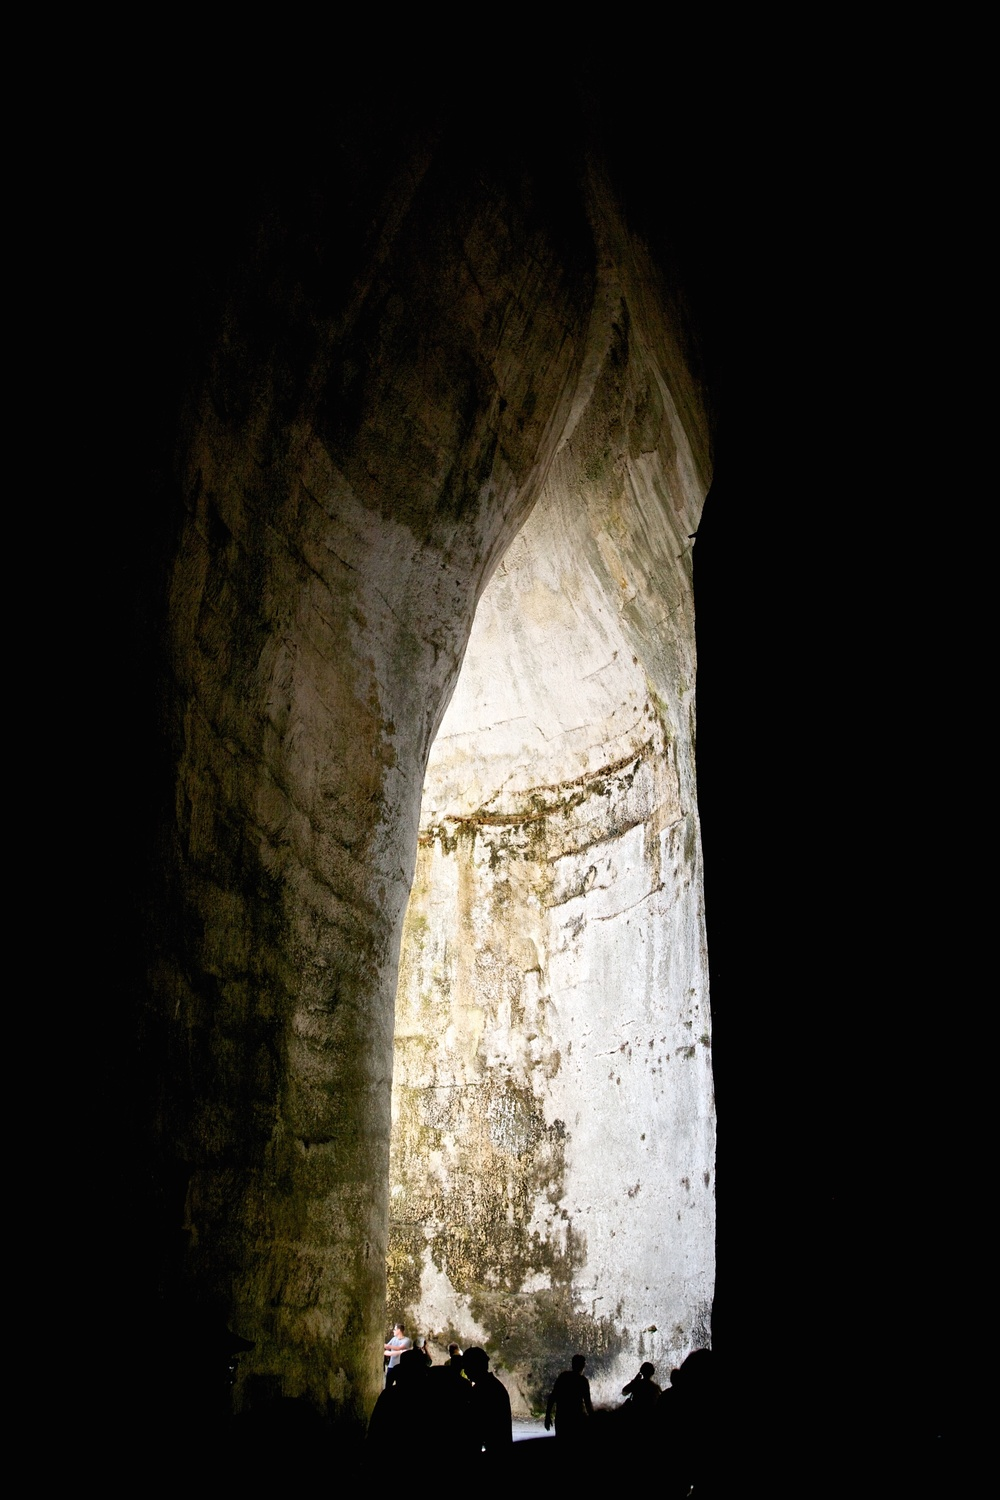 The Ear of Dionysus cave, with its exceptional acoustics. Syracuse, Italy.